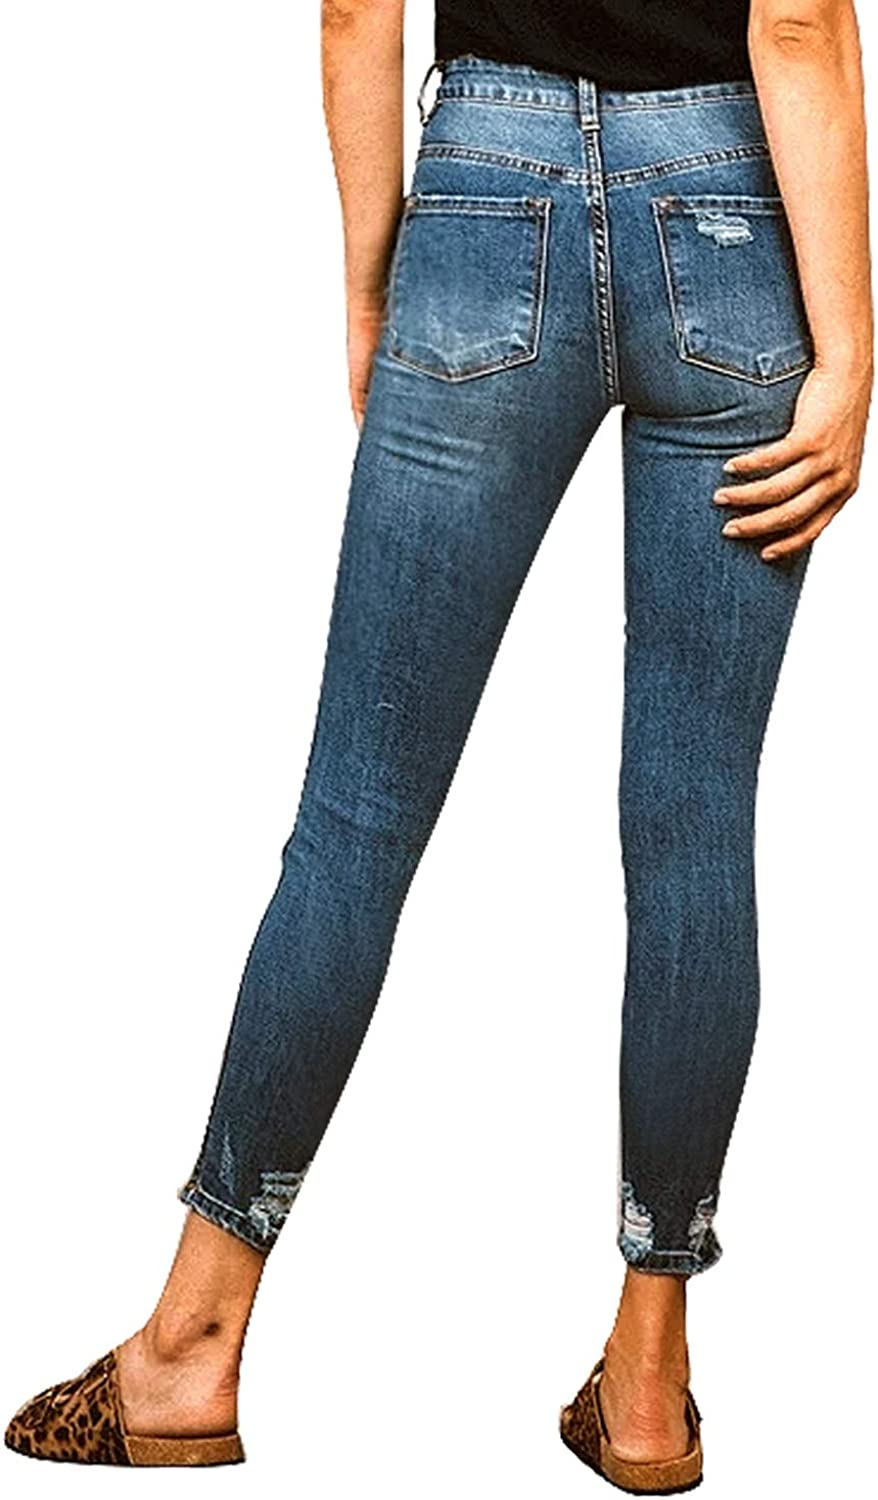 Roskiky Women's Button Fly Denim Skinny Jeans Ripped Stretchy Pants A-dark Blue